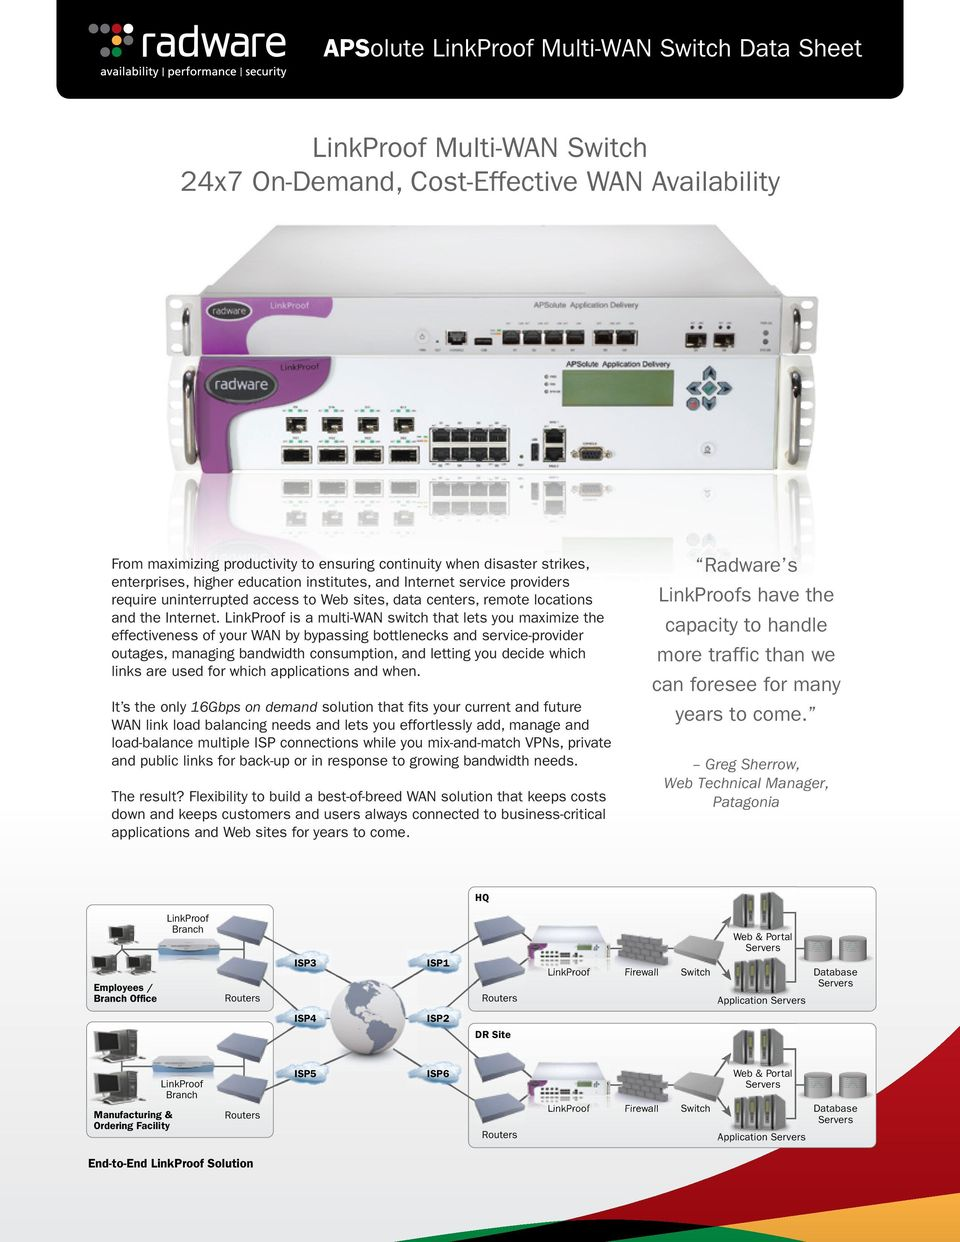 is a multi-wan switch that lets you maximize the effectiveness of your WAN by bypassing bottlenecks and service-provider outages, managing bandwidth consumption, and letting you decide which links